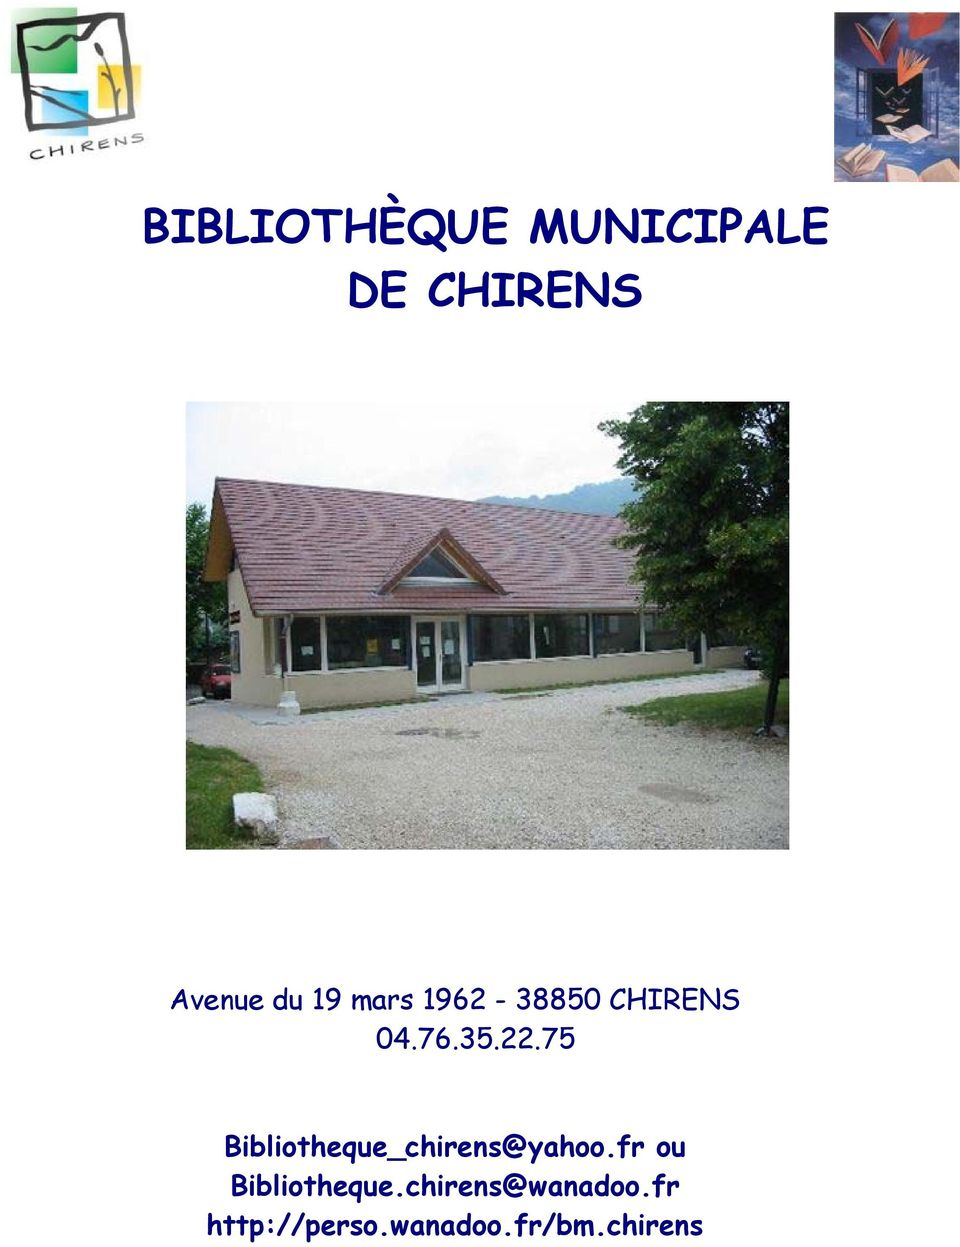 75 Bibliotheque_chirens@yahoo.